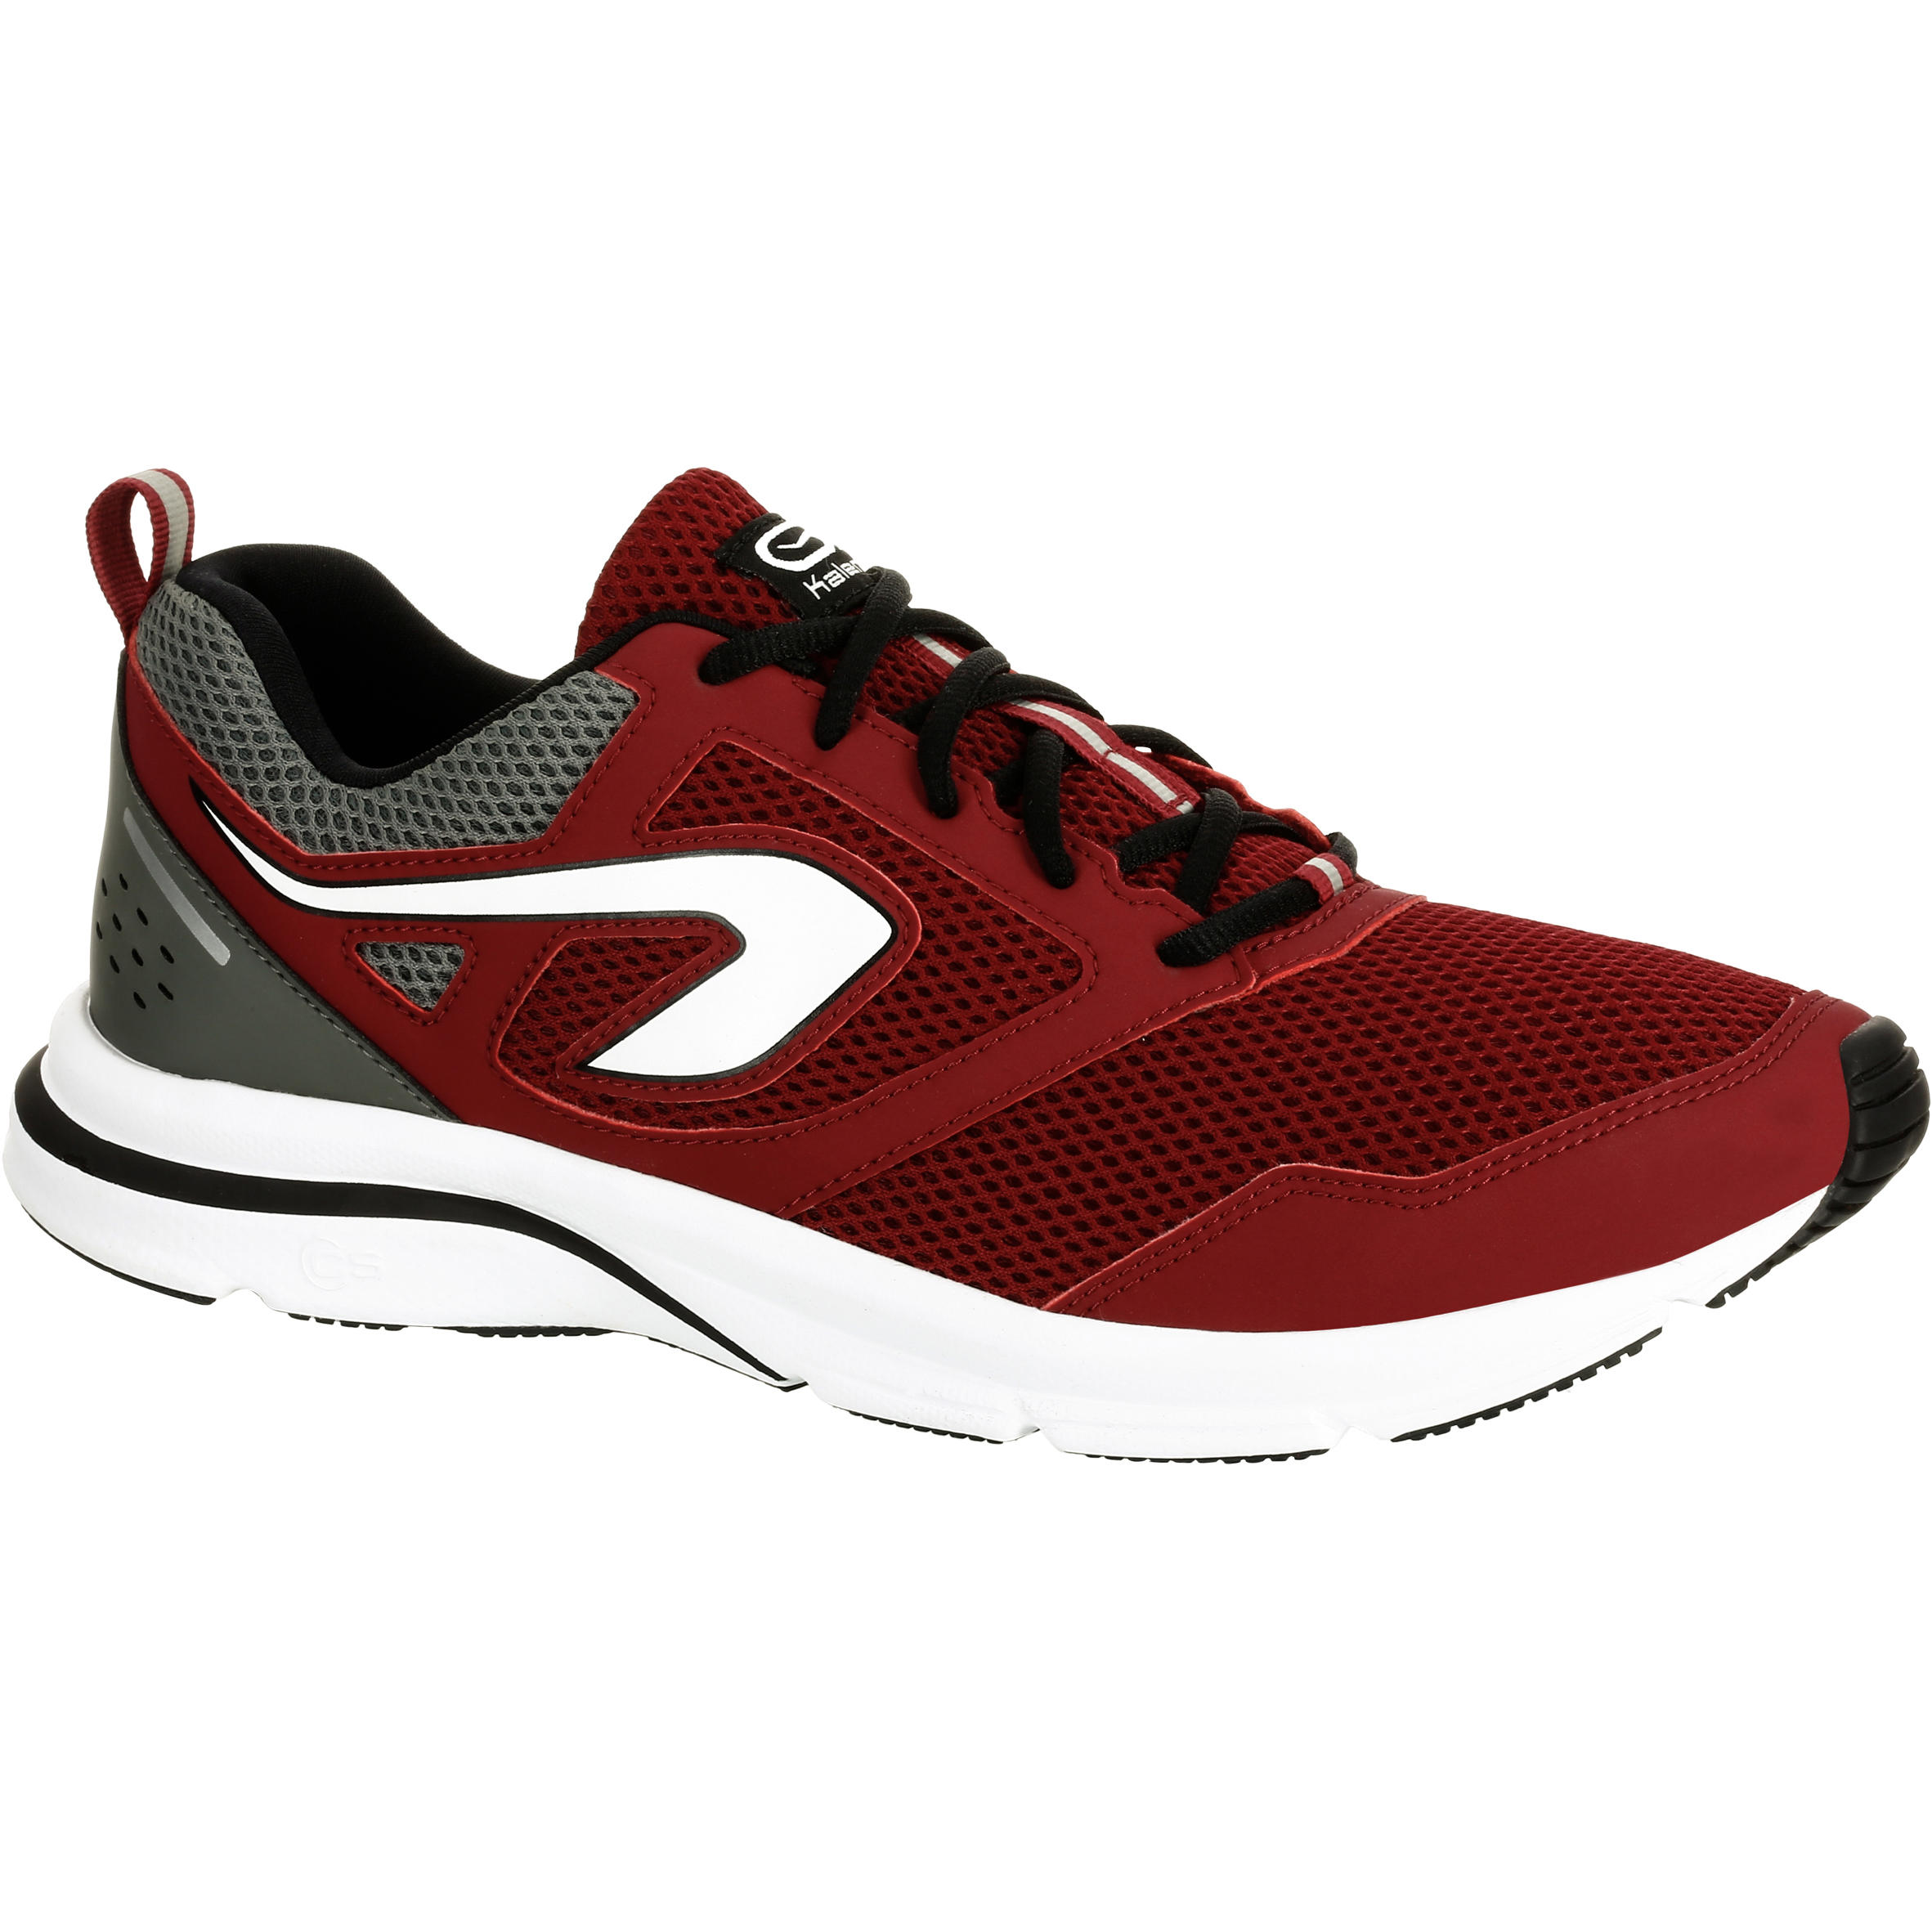 RUN ACTIVE MEN'S RUNNING SHOES BURGUNDY